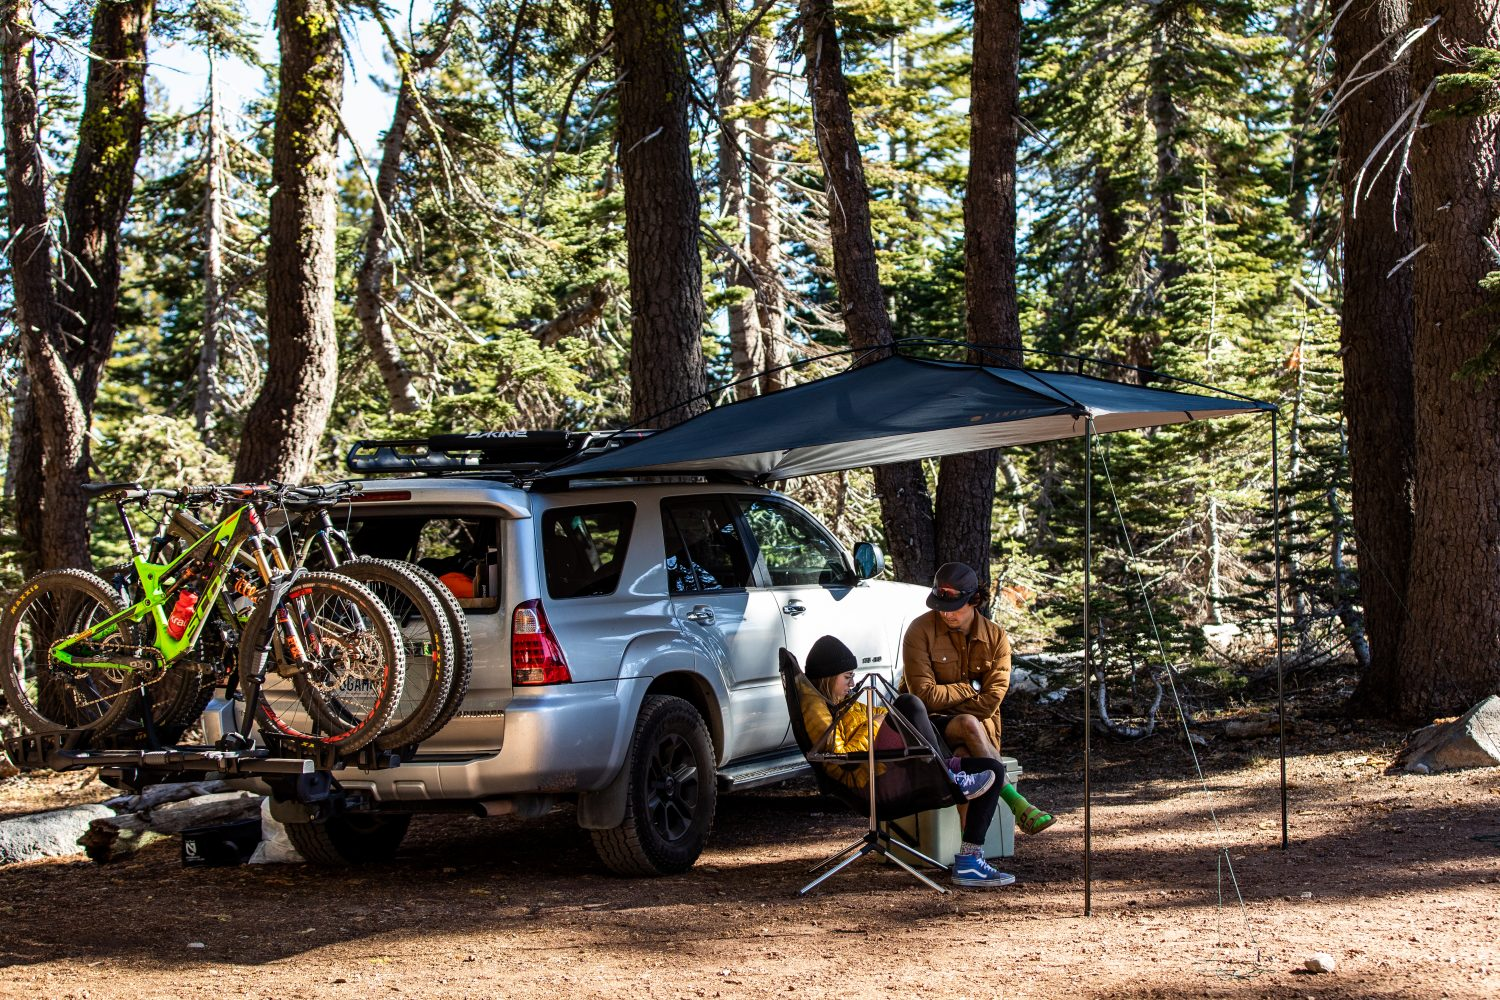 Camping Gear That Does Everything (Except Pitch the Tent)